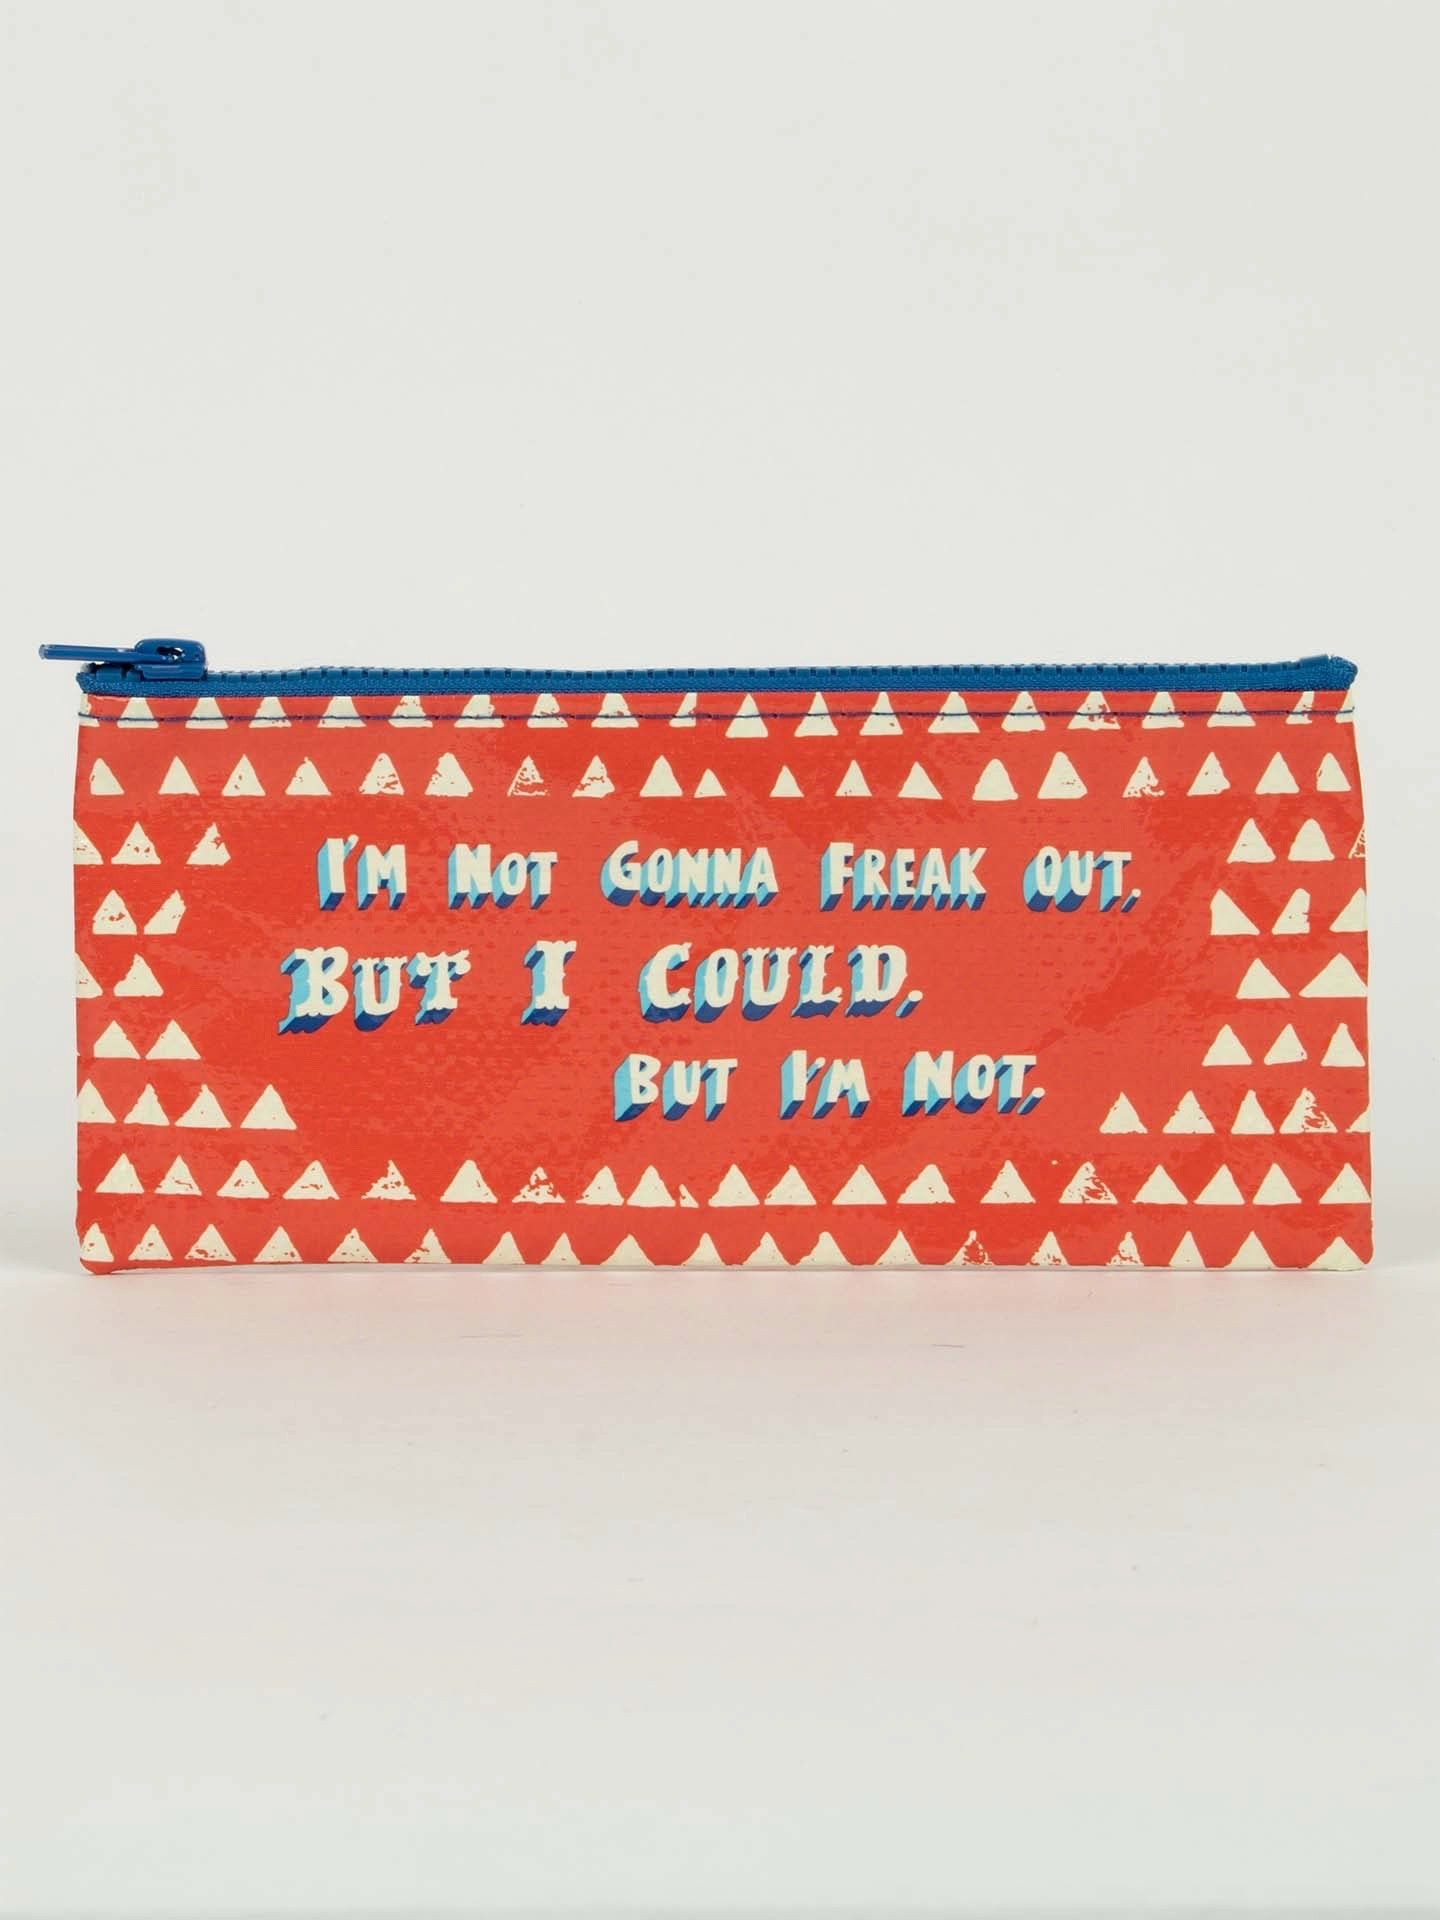 Blue Q Pencil Case - I'm Not Gonna Freak Out. But I Could, But I'm Not.